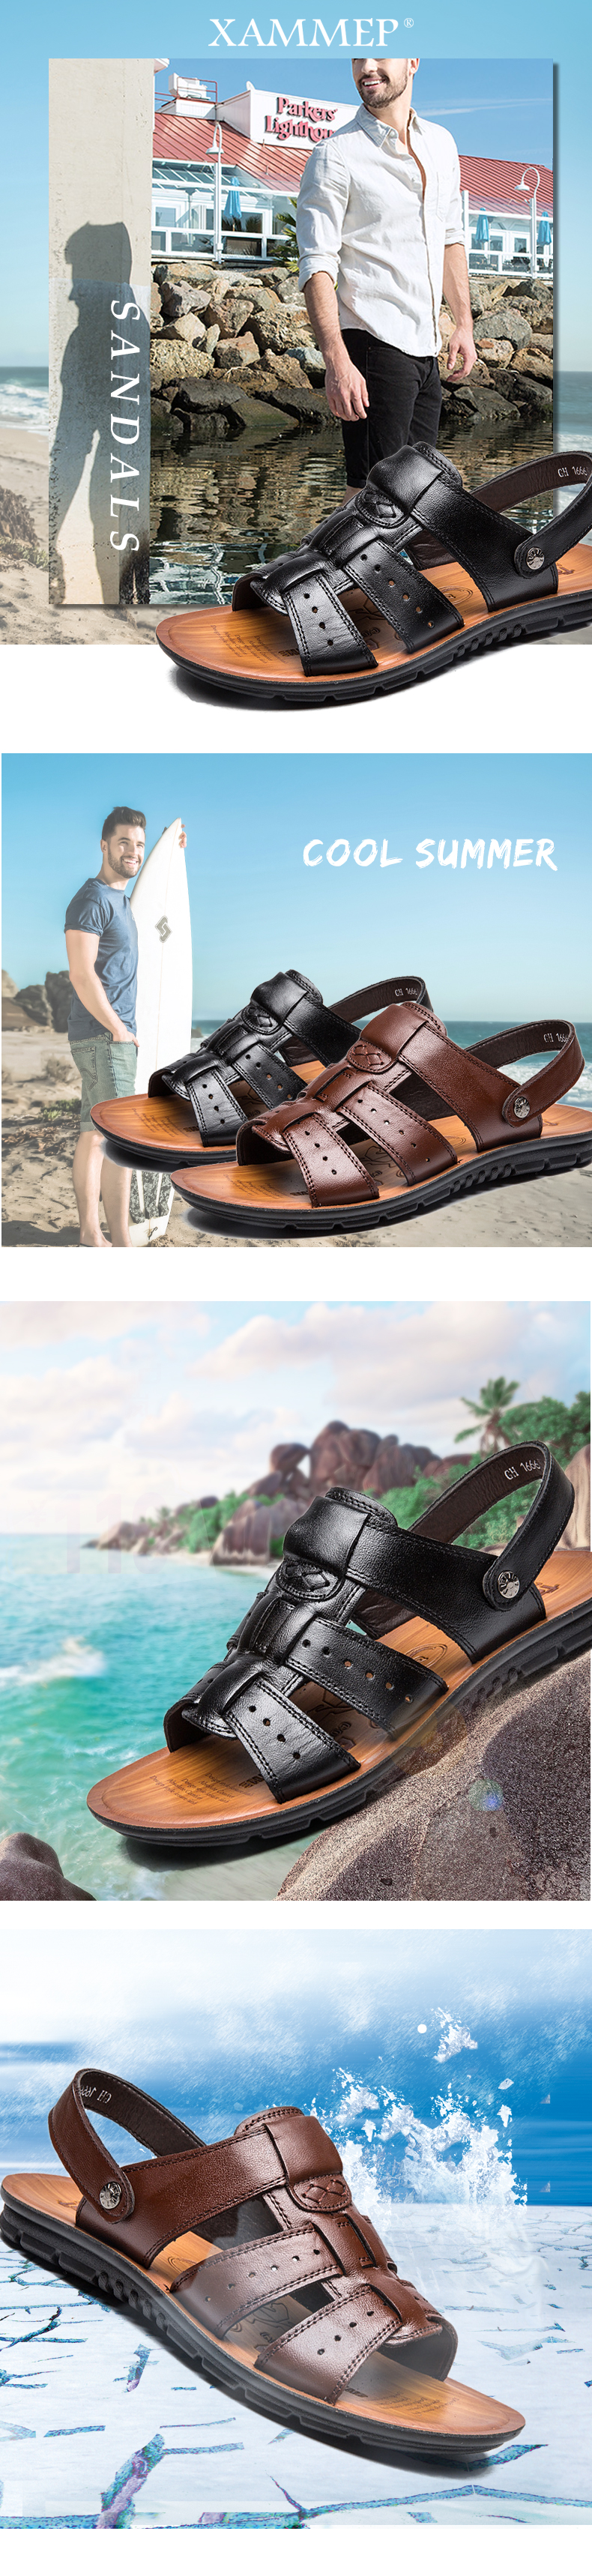 HTB16yQVXoR1BeNjy0Fmq6z0wVXaD - Xammep Men Sandals Genuine Split Leather Men Beach Shoes Brand Men Casual Shoes Men Slippers Sneakers Summer Shoes Flip Flops